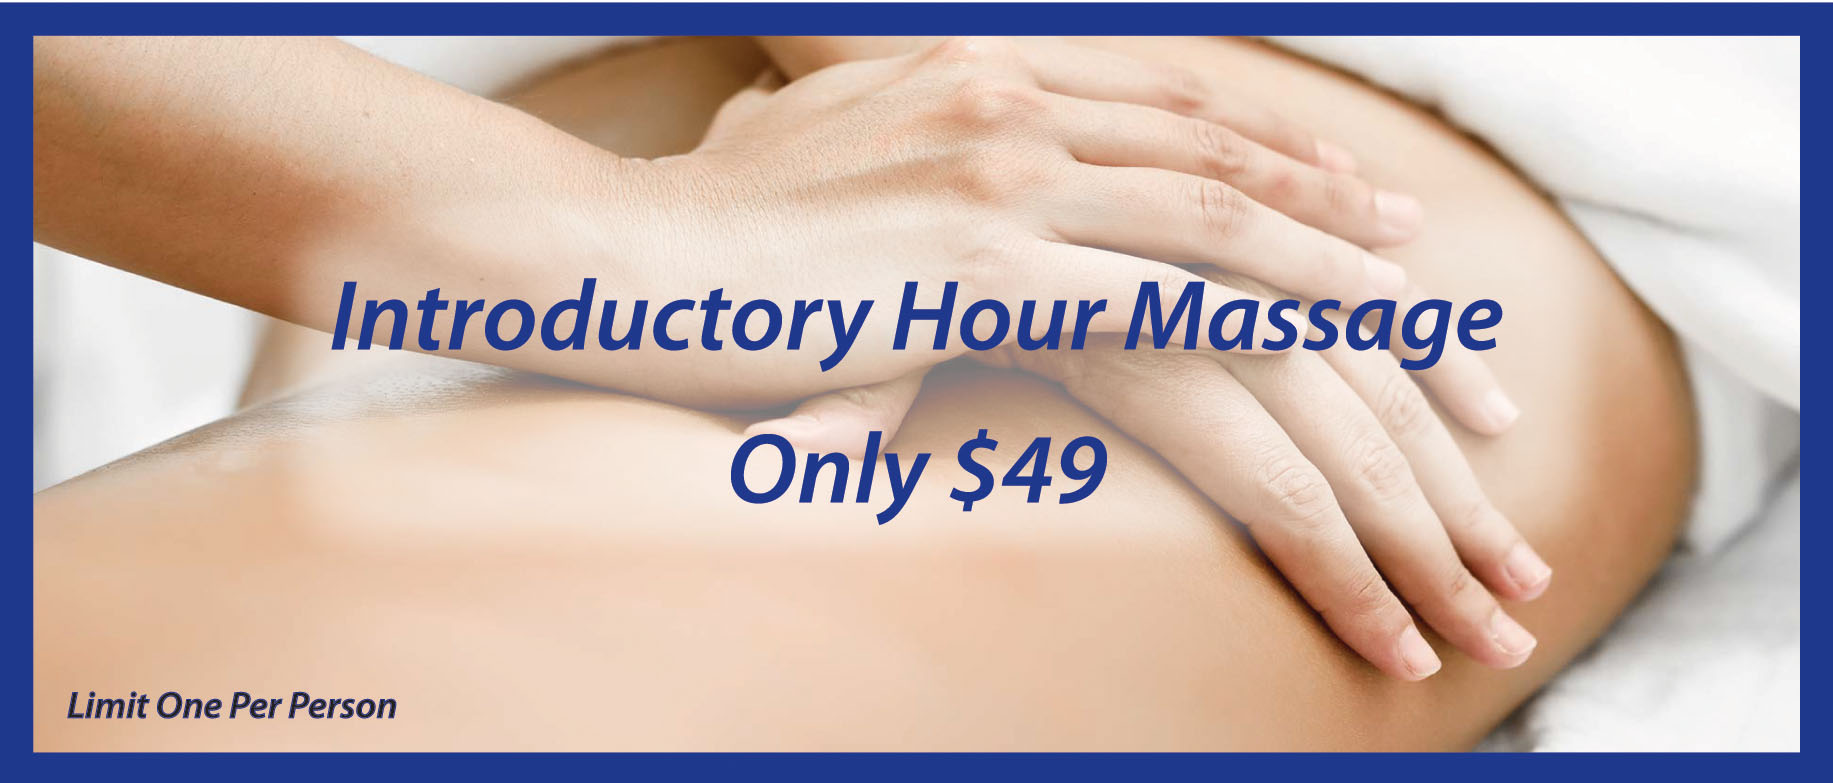 Introductory Massage in Charlotte